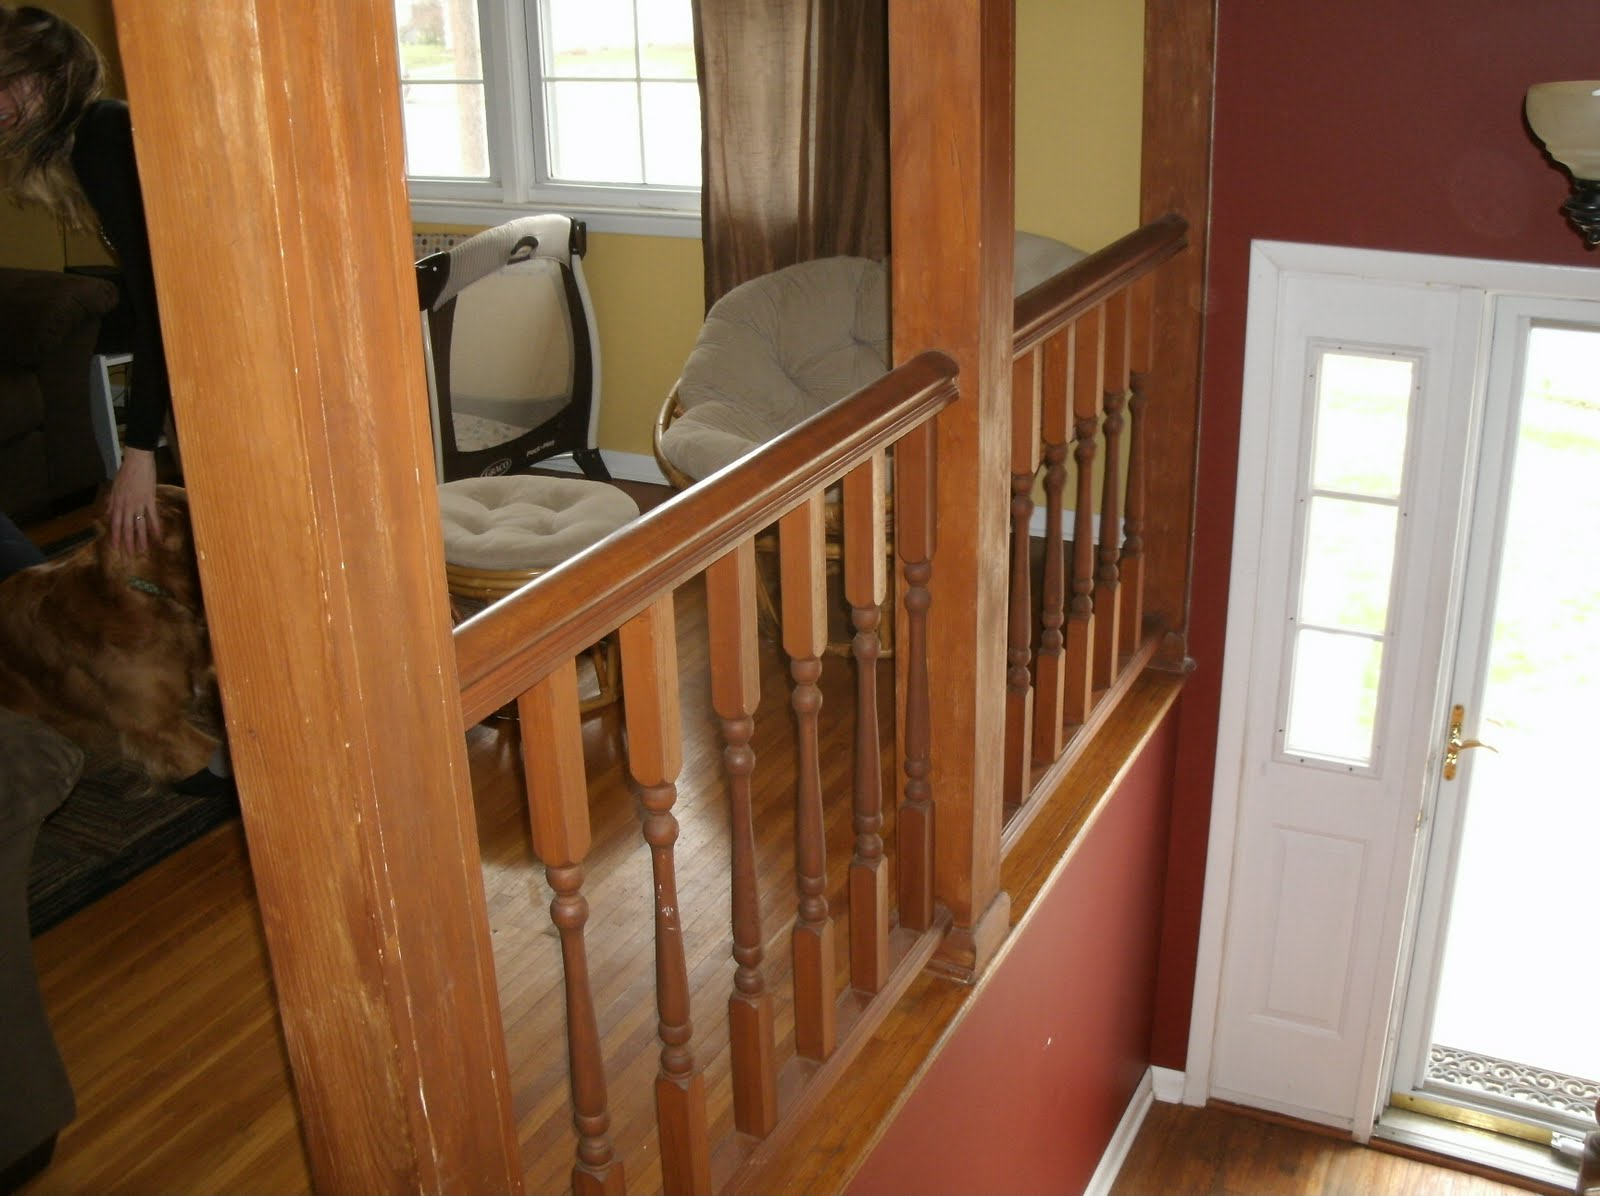 Oak Interior Stair Case Railing Designs, White Baluster Oak Stair Railings  Installation And Finishing